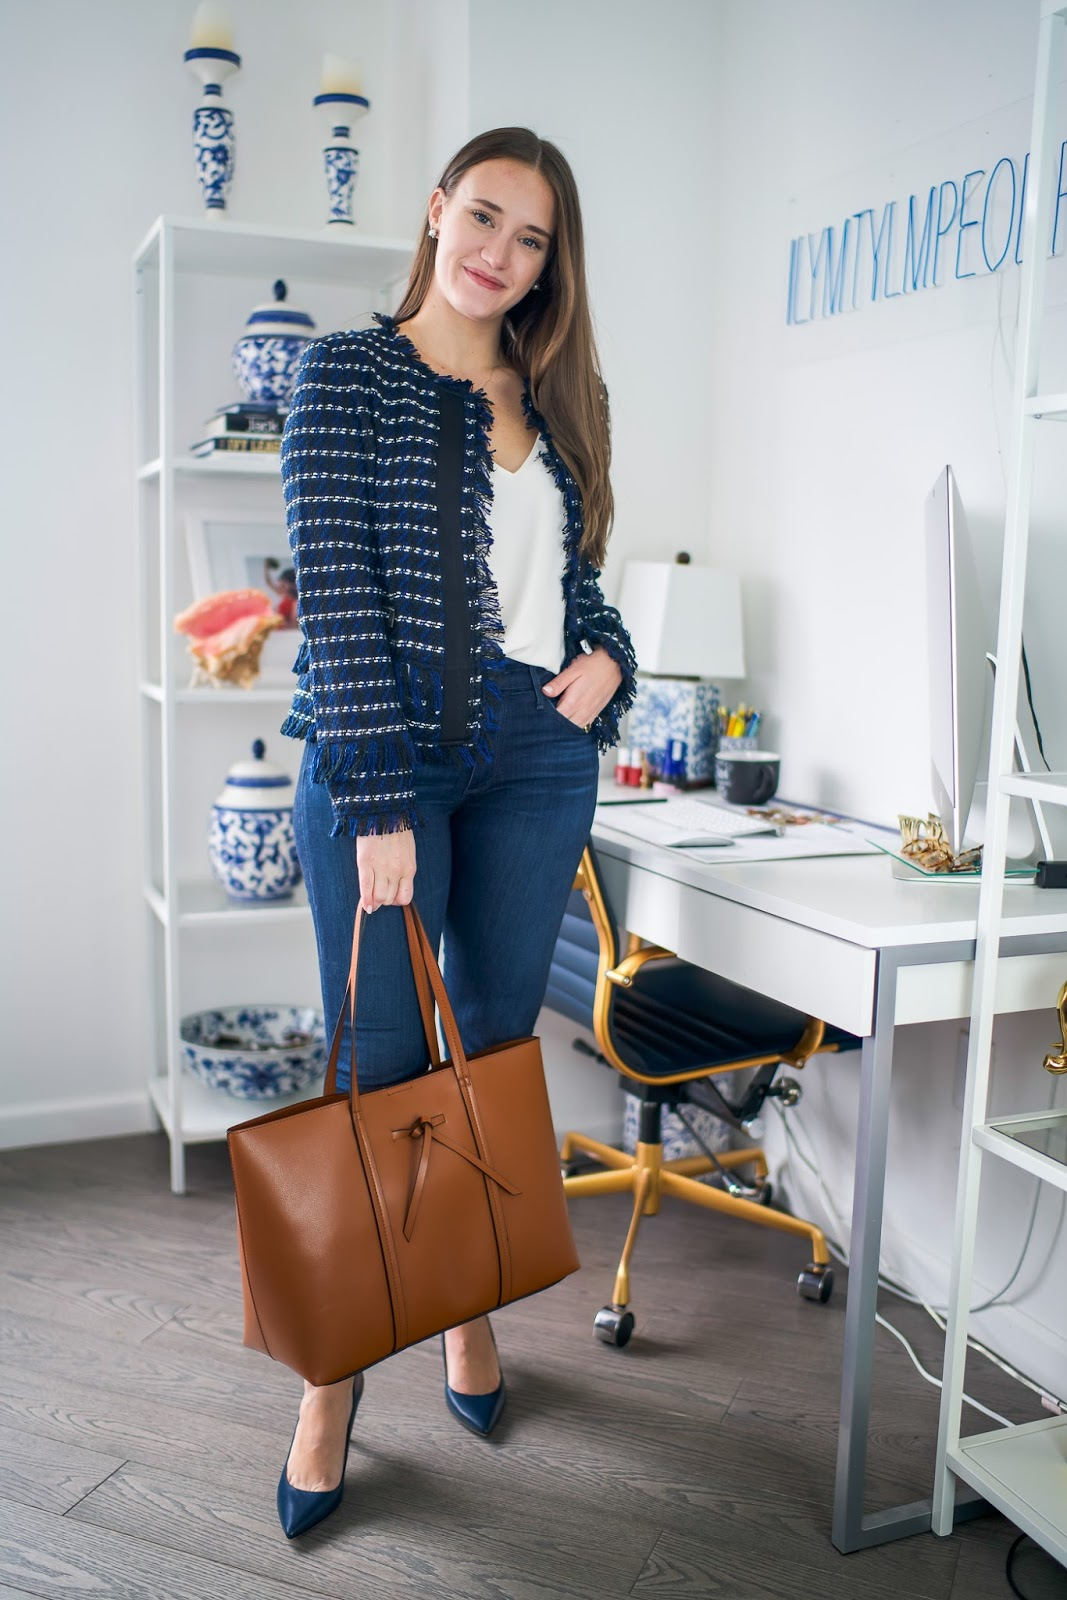 c9179128ca4f Casual Friday outfit by popular New York style blogger Covering the Bases